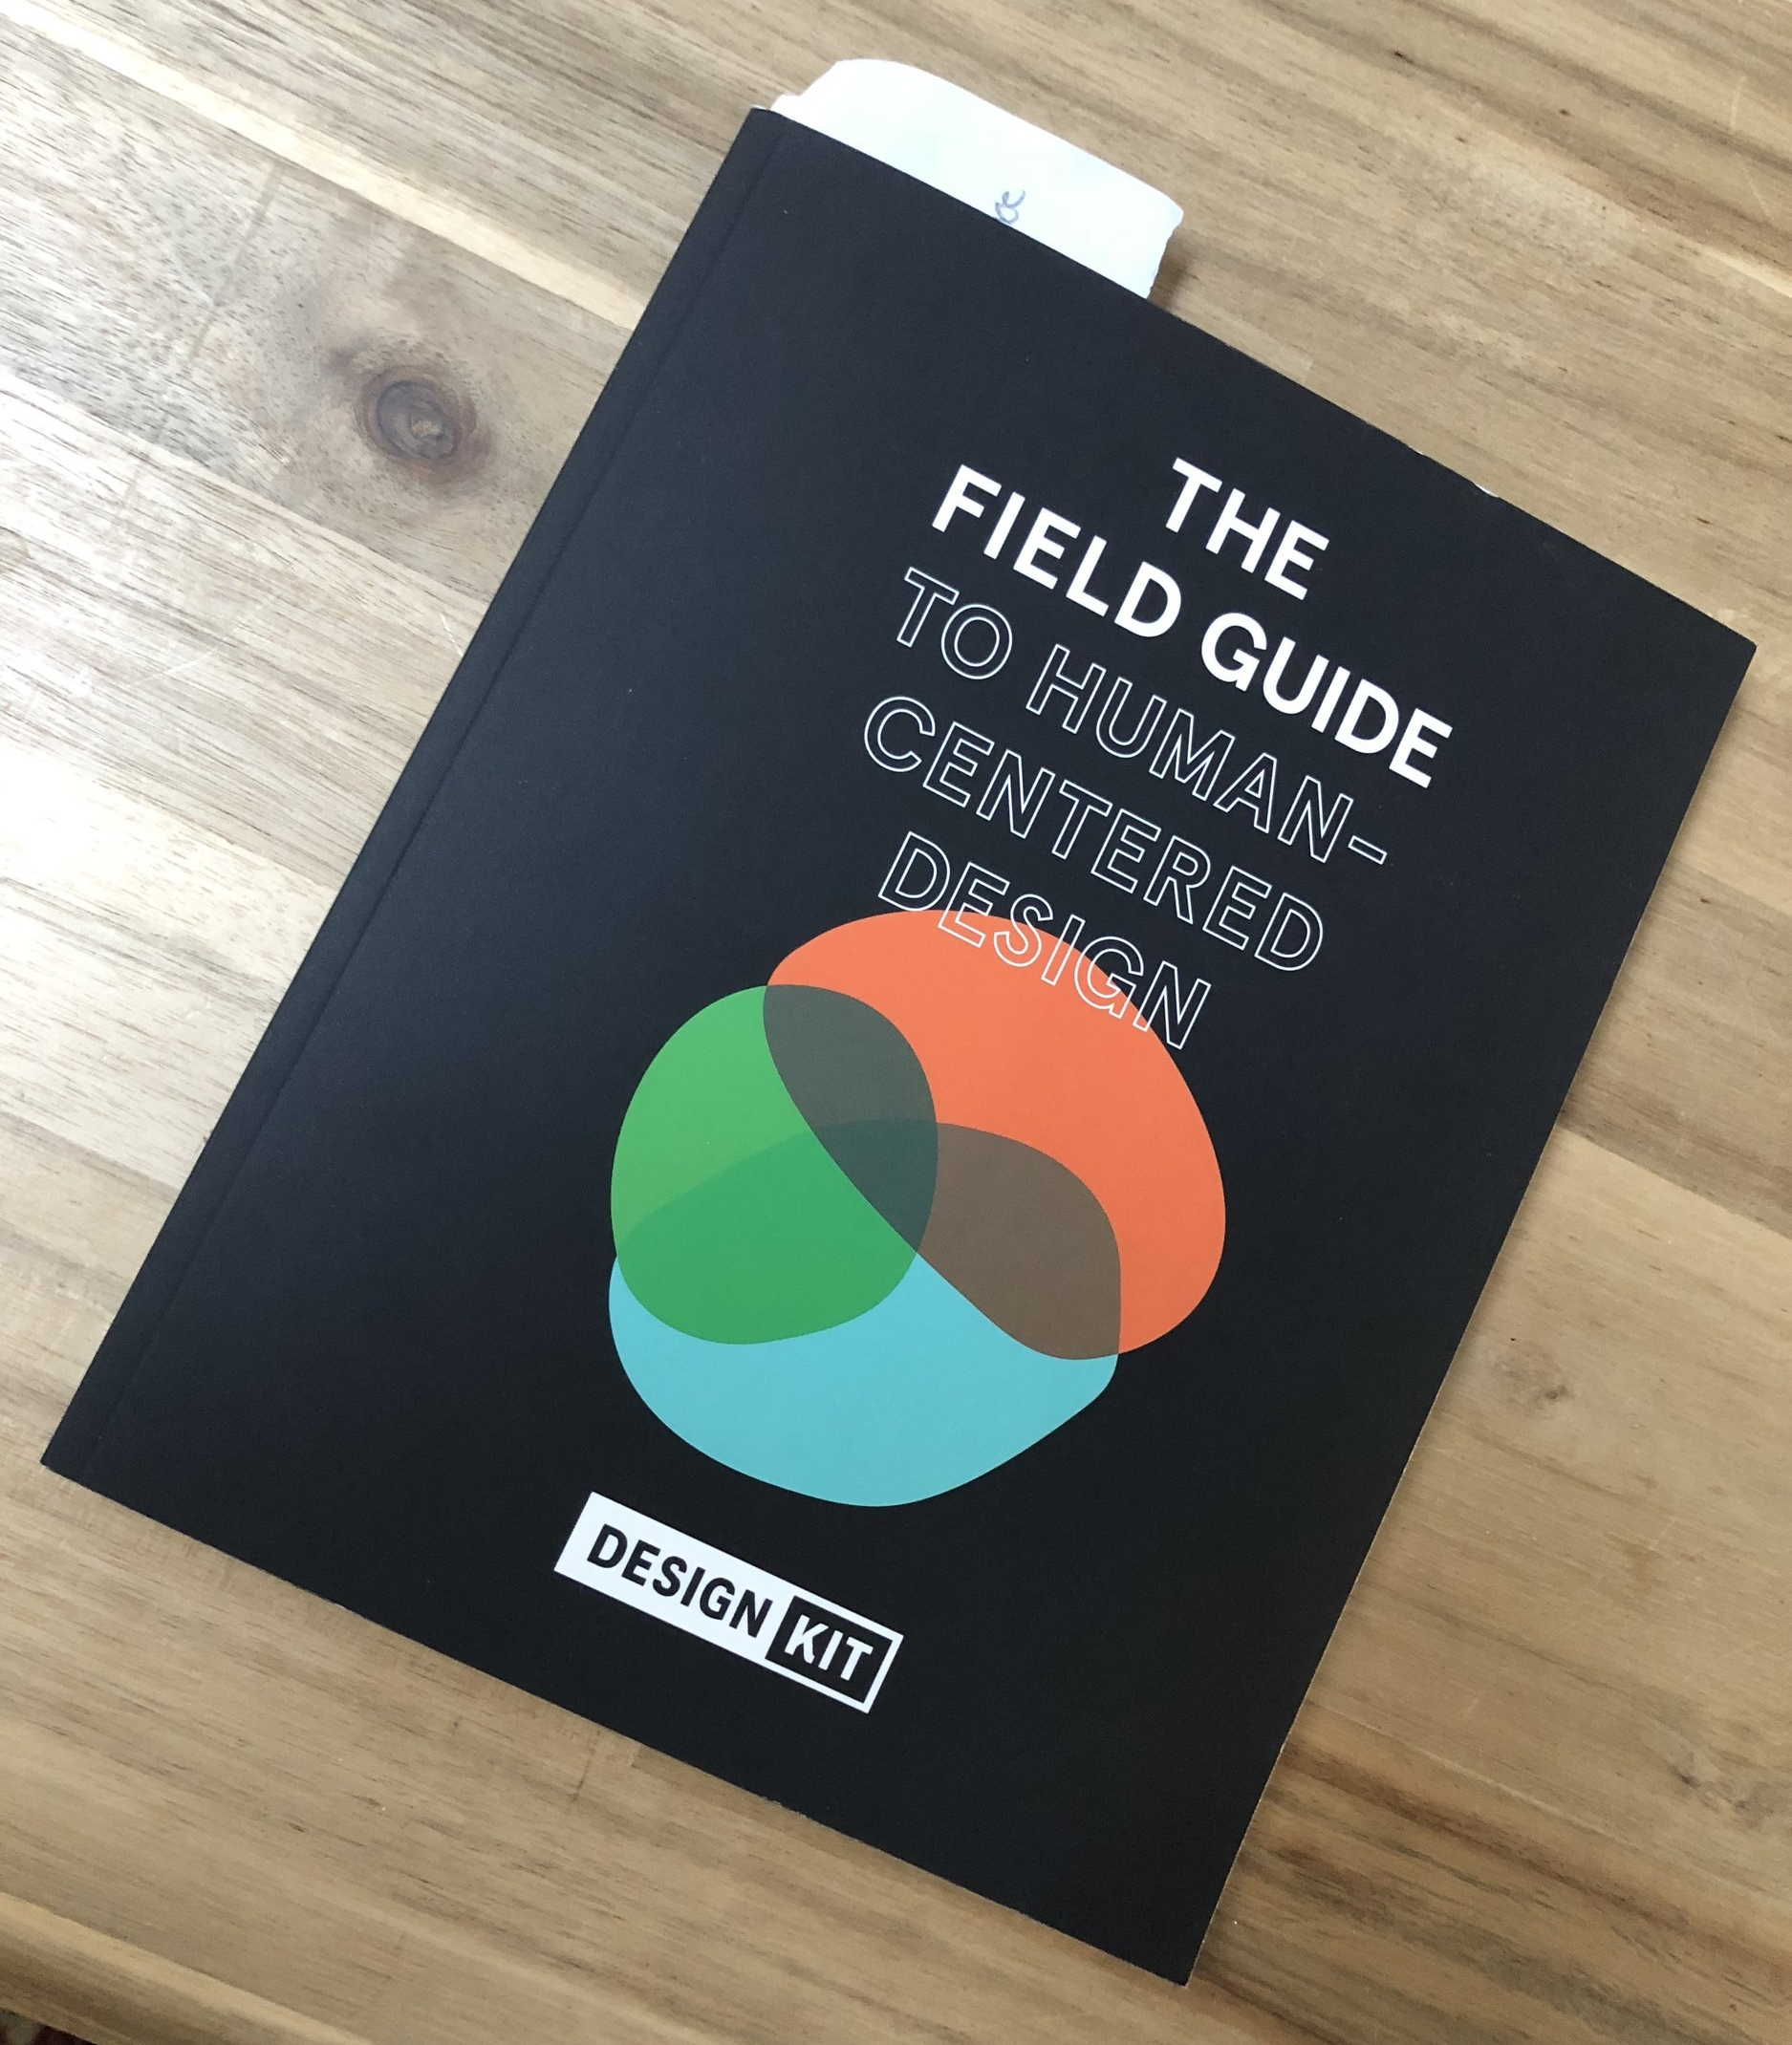 The Field guide to Human-Centered Design, by IDEO.org